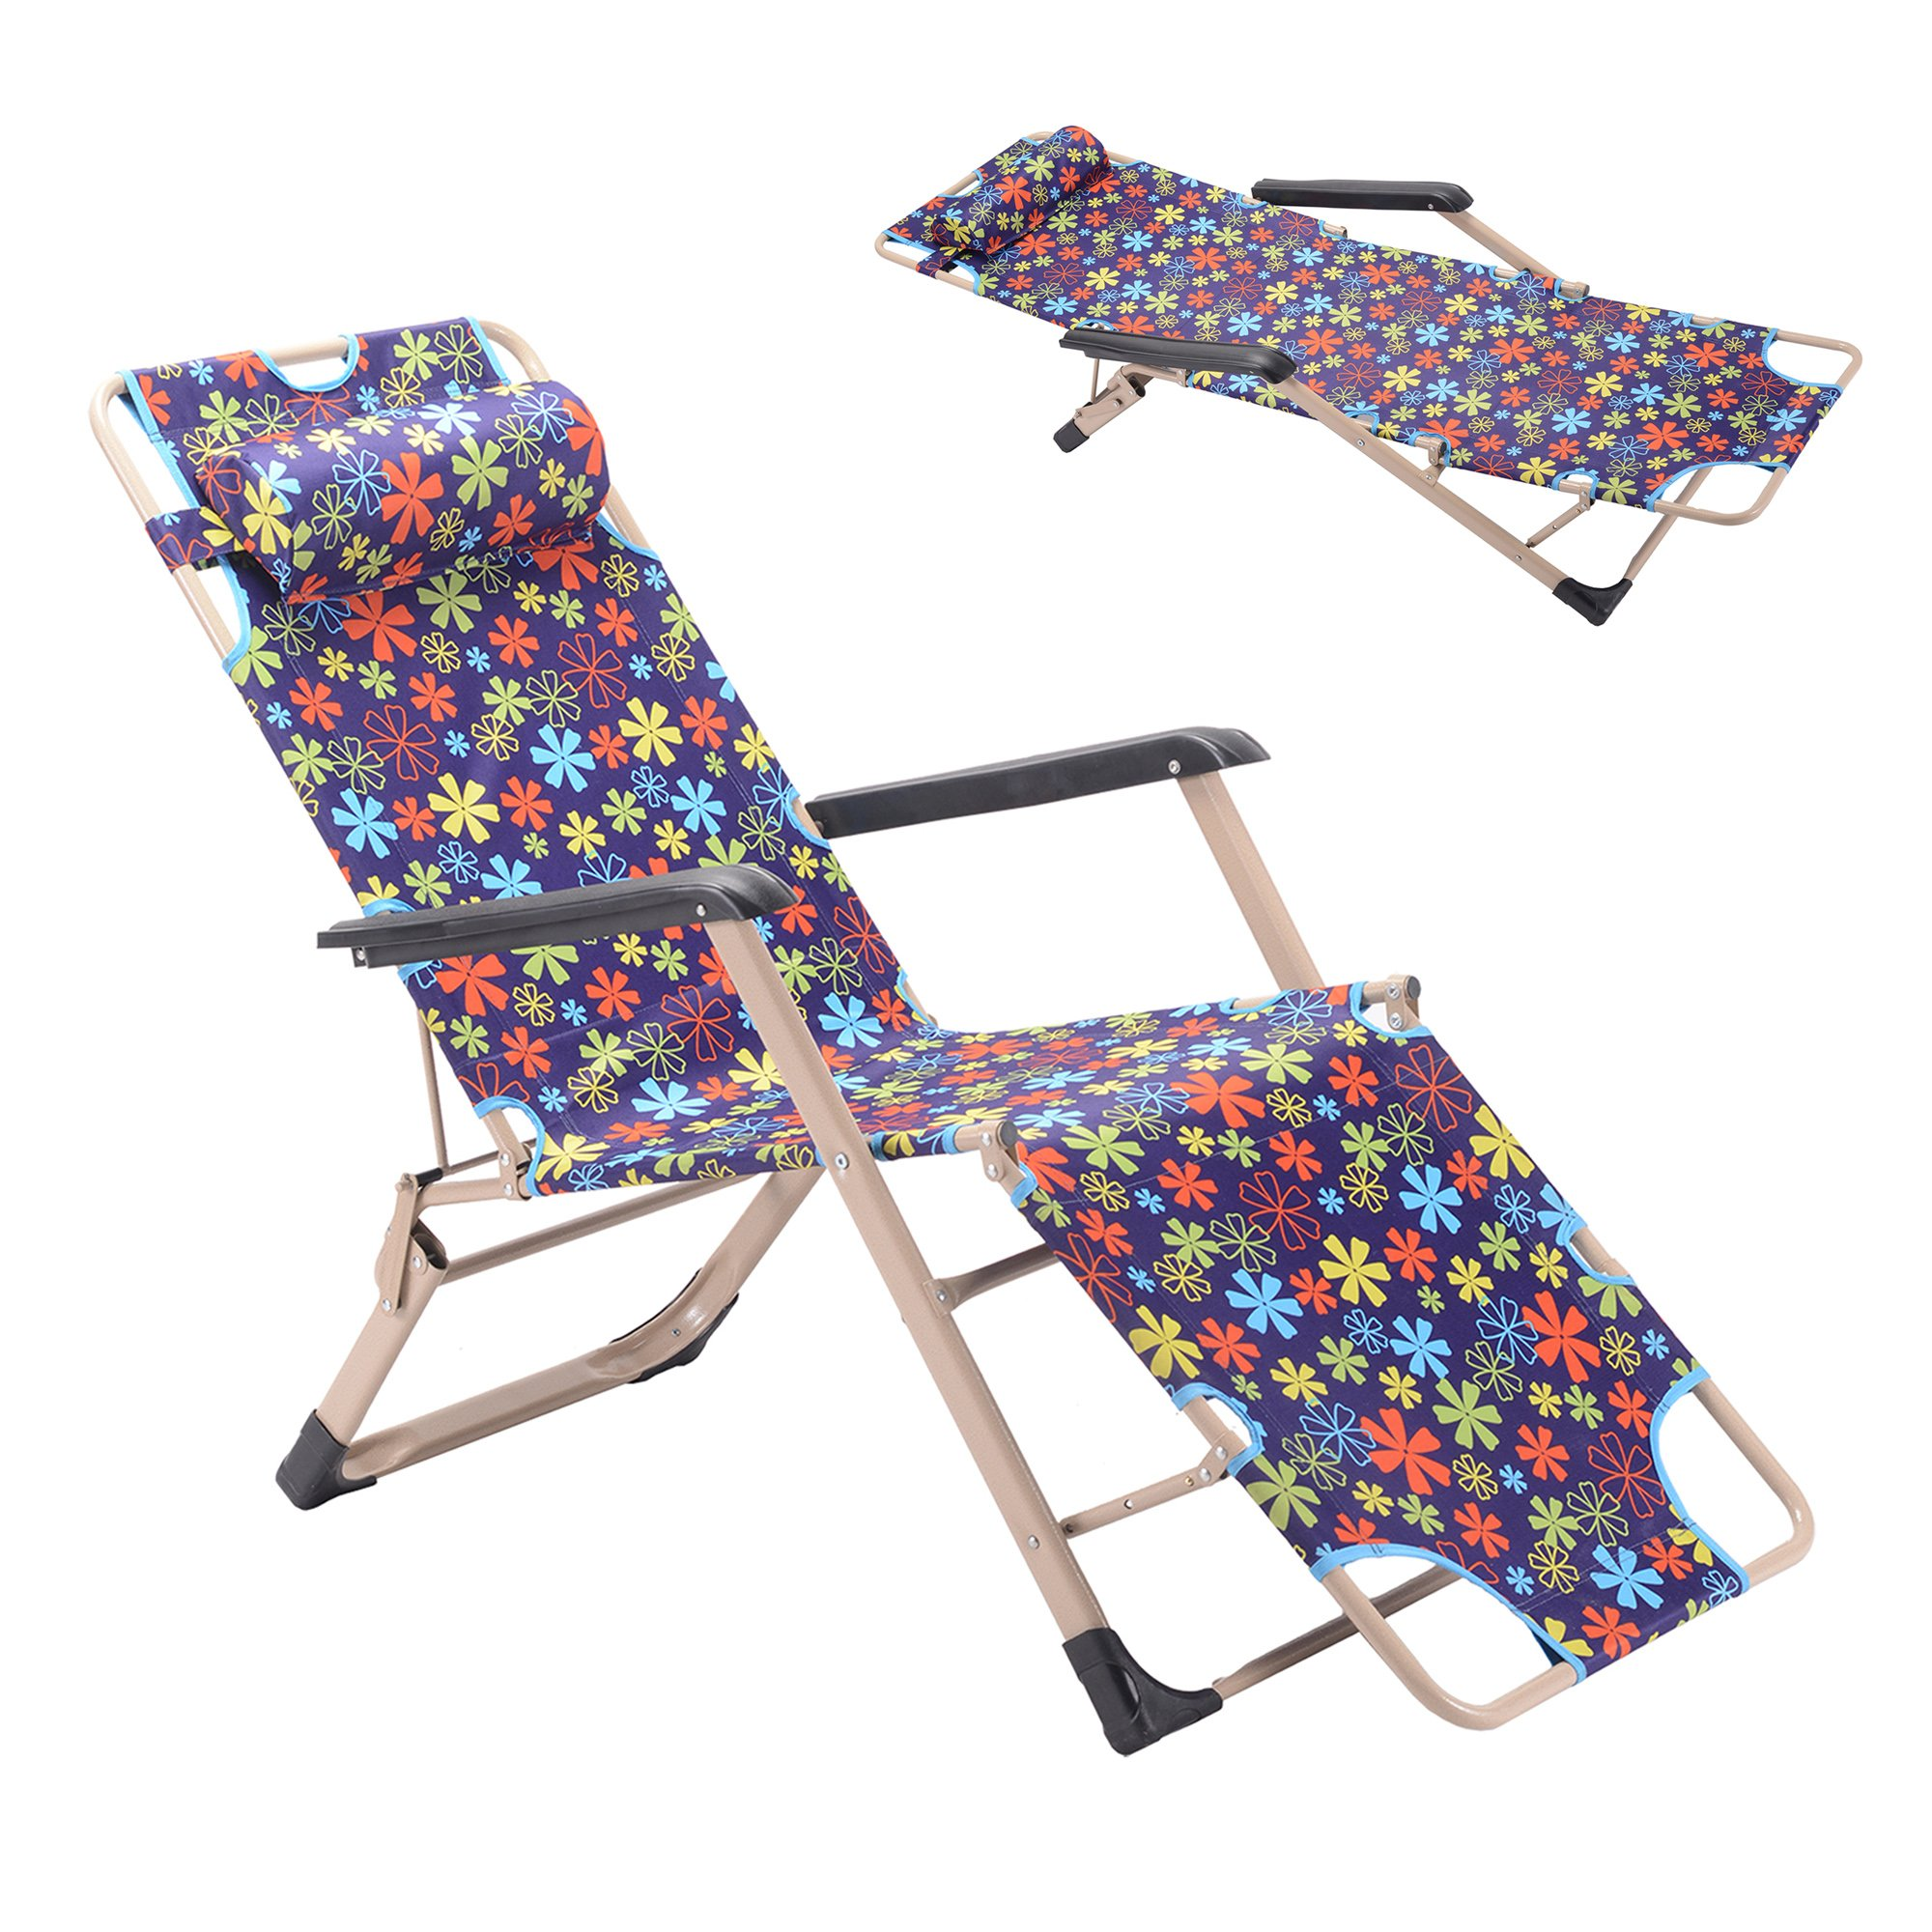 GOJOOASIS Folding Chaise Lounge Chair Recliner Bed & Cot for a Nap or Outdoor Use (Purple)